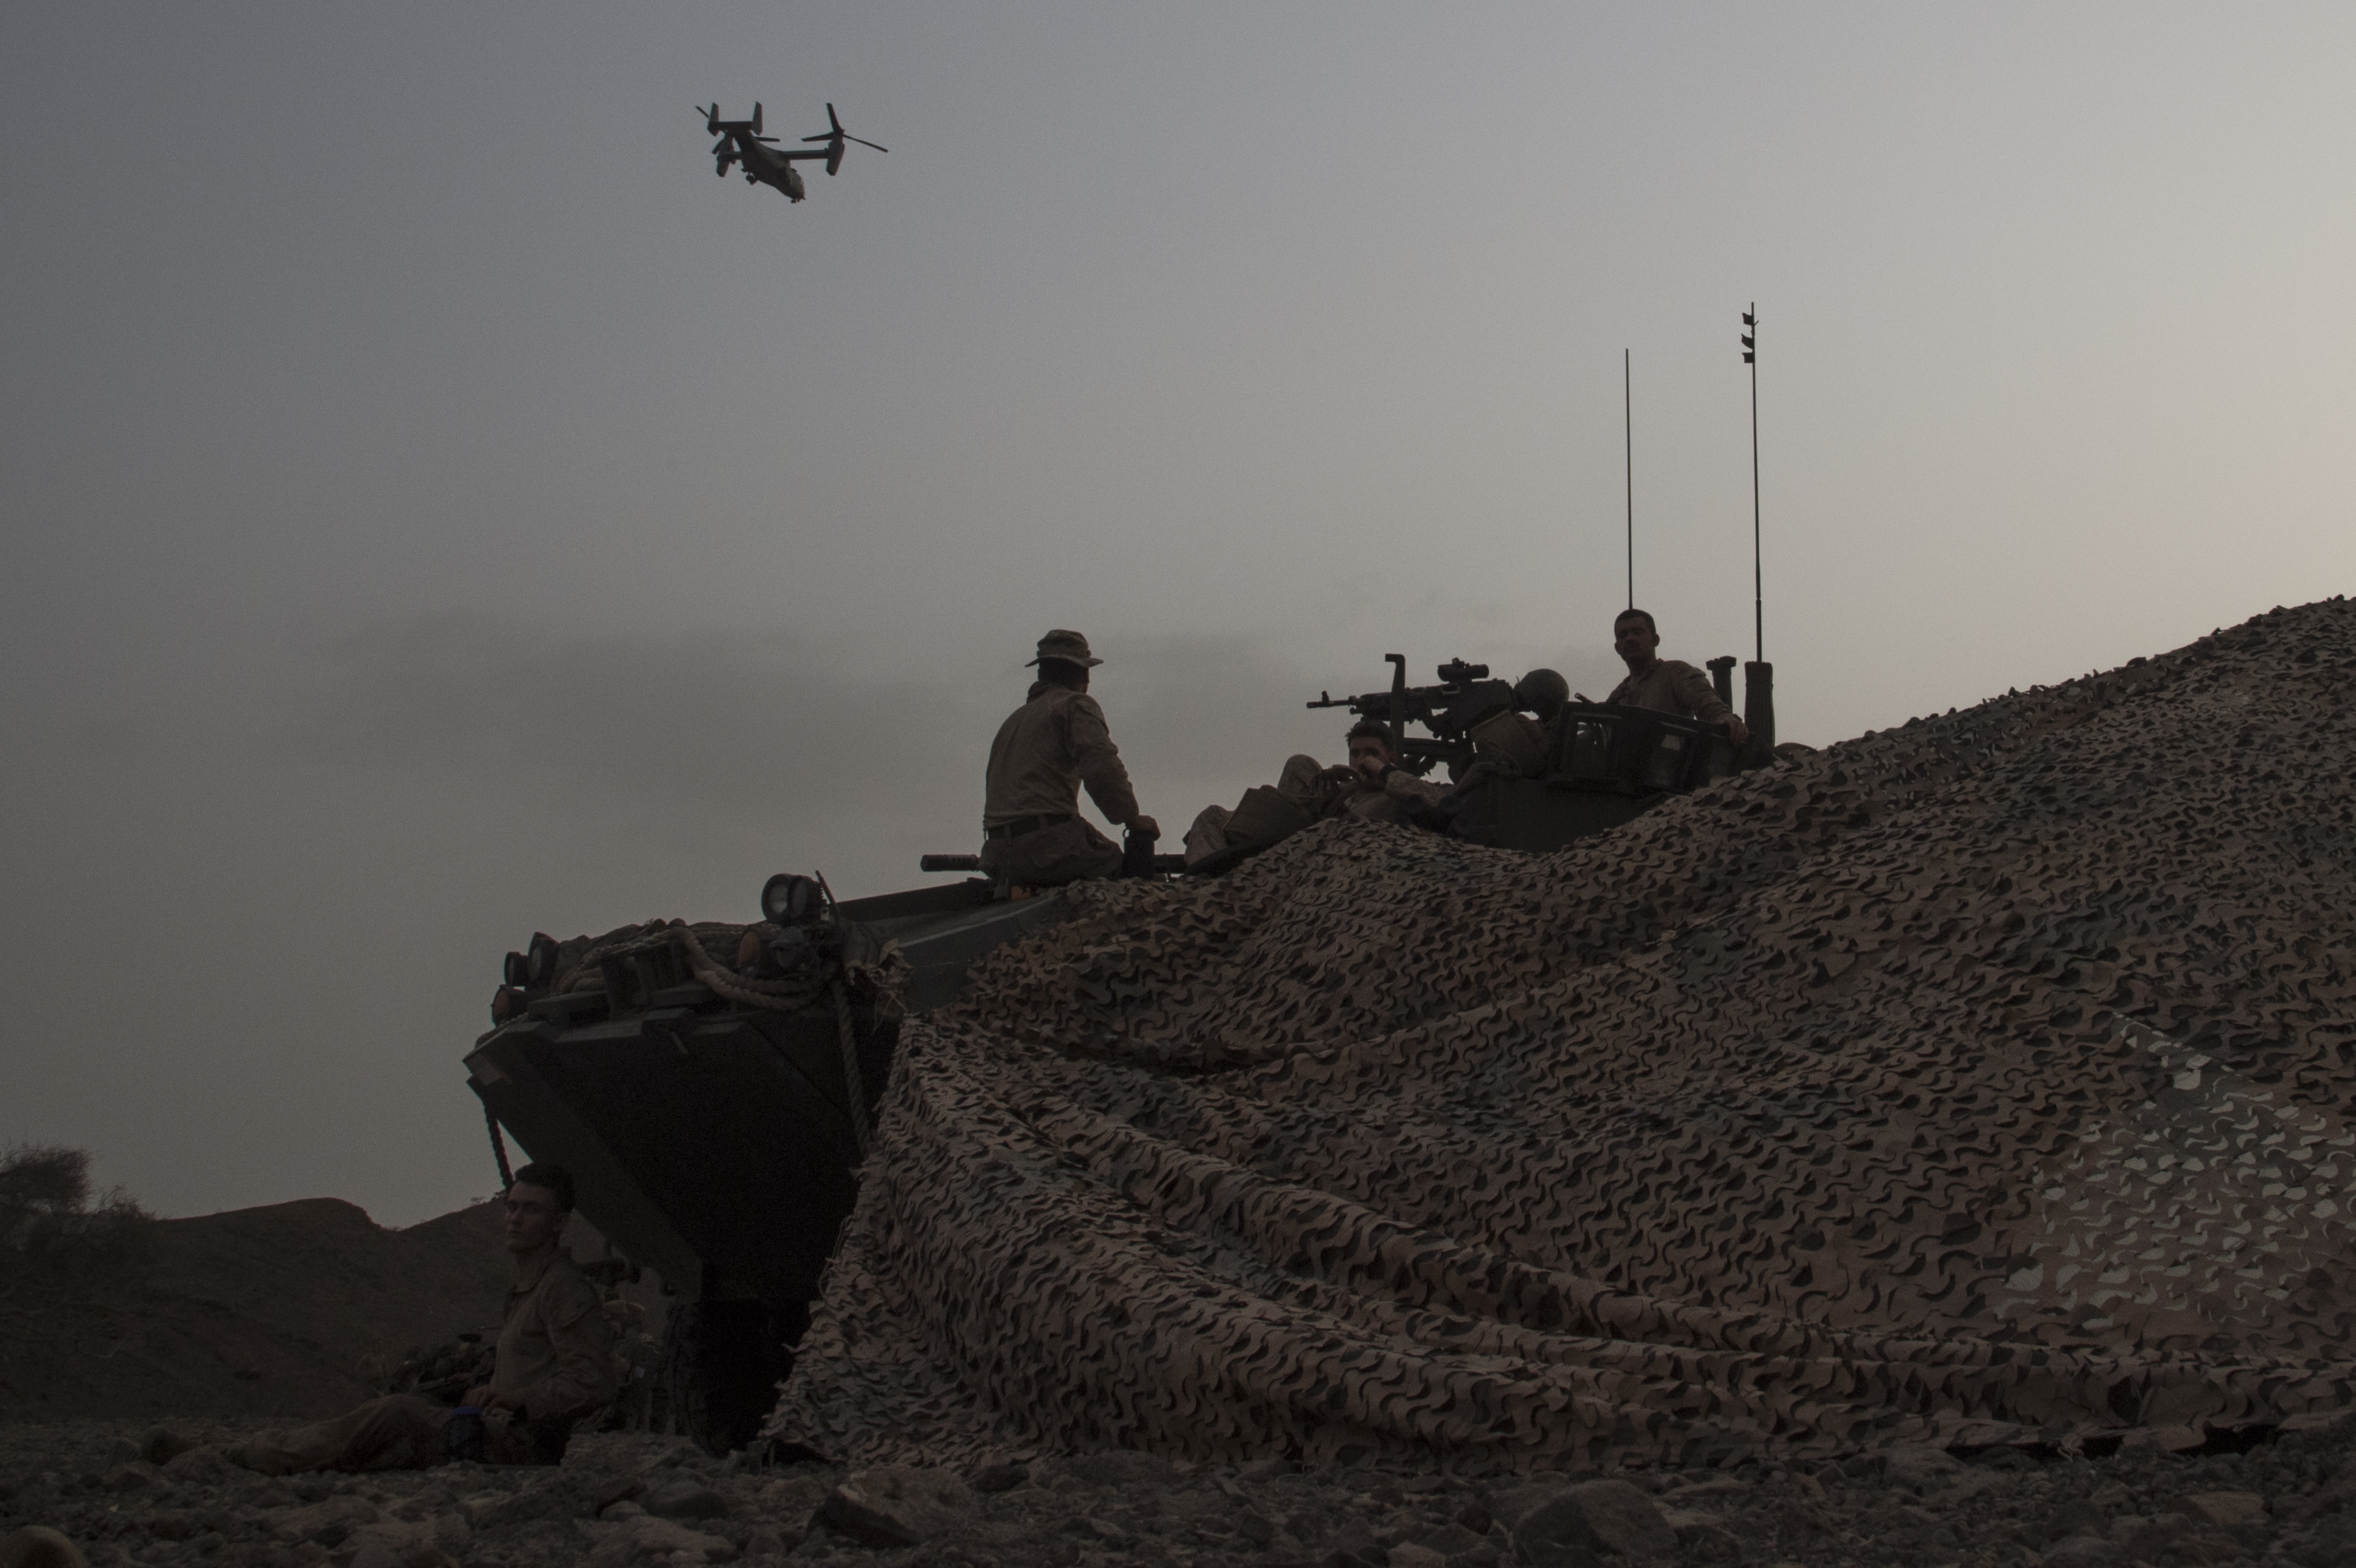 Marines with the 24th Marine Expeditionary Unit in an amphibious assault vehicle watch an MV-22 Osprey fly over during an exercise on the east coast of Africa from the amphibious assault ship USS Bataan (LHD 5) July 9, 2017. Marines with the 24th MEU conduct annual training while deployed with the Bataan Amphibious Ready Group to stay mission ready and maintain Marine Corps standards. Bataan and its ARG are deployed to the U.S. 5th Fleet area of operations in support of maritime security operations designed to reassure allies and partners and preserve the freedom of navigation and the free flow of commerce in the region. (U.S. Air National Guard photo by Tech. Sgt. Joe Harwood)